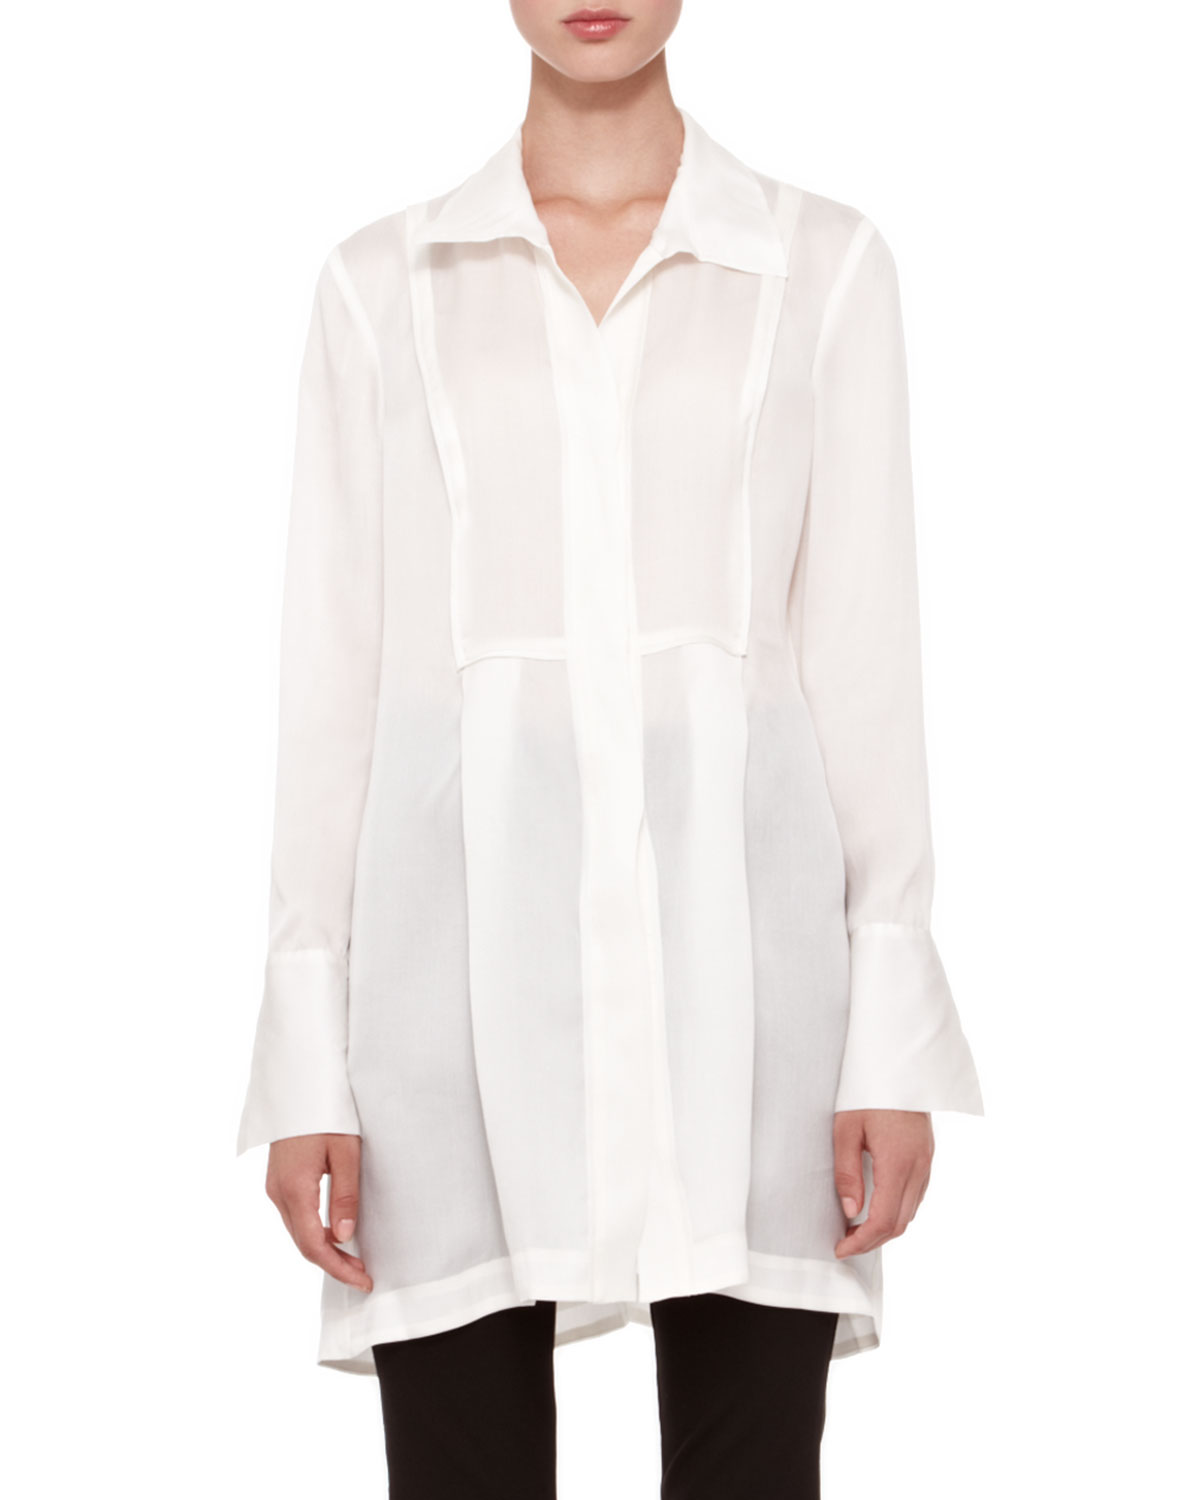 Donna karan Long-Sleeve Tunic Blouse in White | Lyst